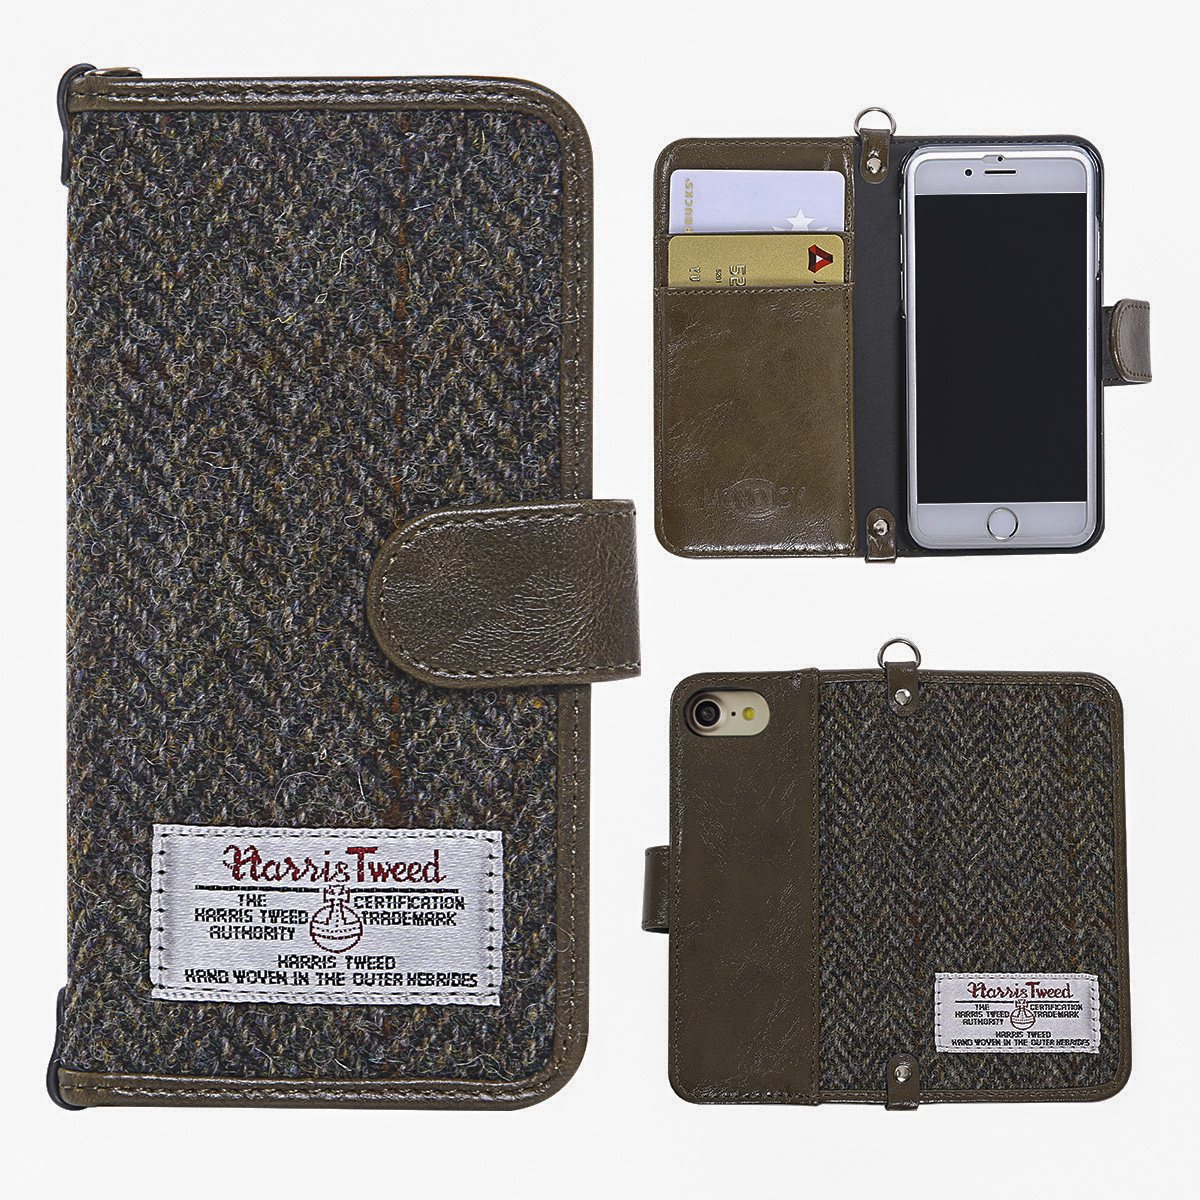 Harris Tweed iPhone 7 Case, Hard PC+ Premium Cotton Material Wallet For iPhone 7